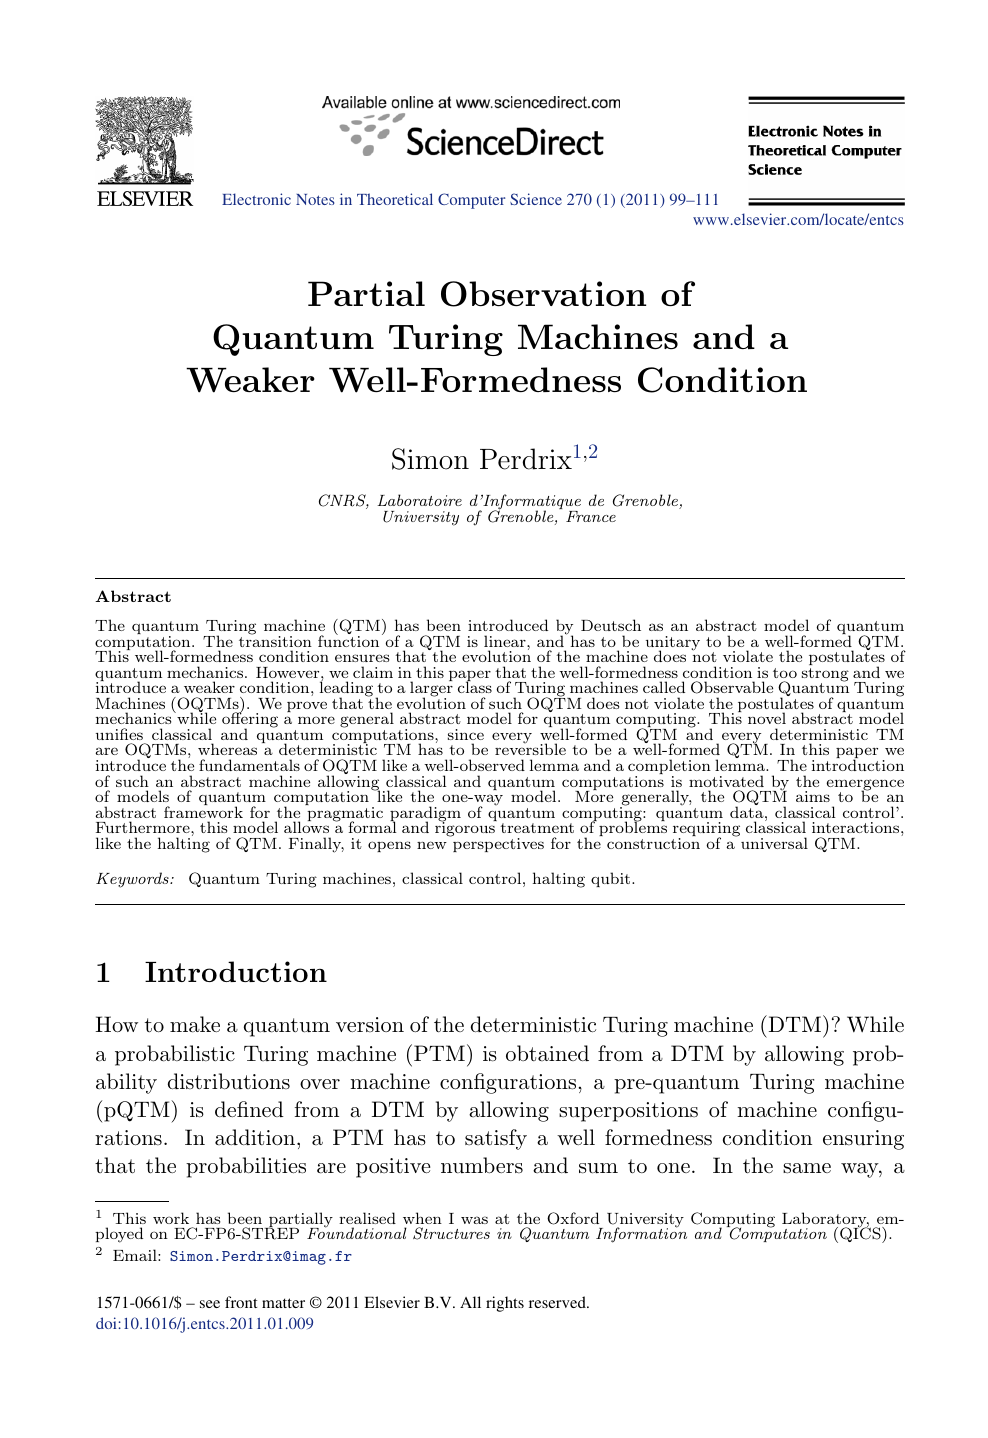 Partial Observation of Quantum Turing Machines and a Weaker